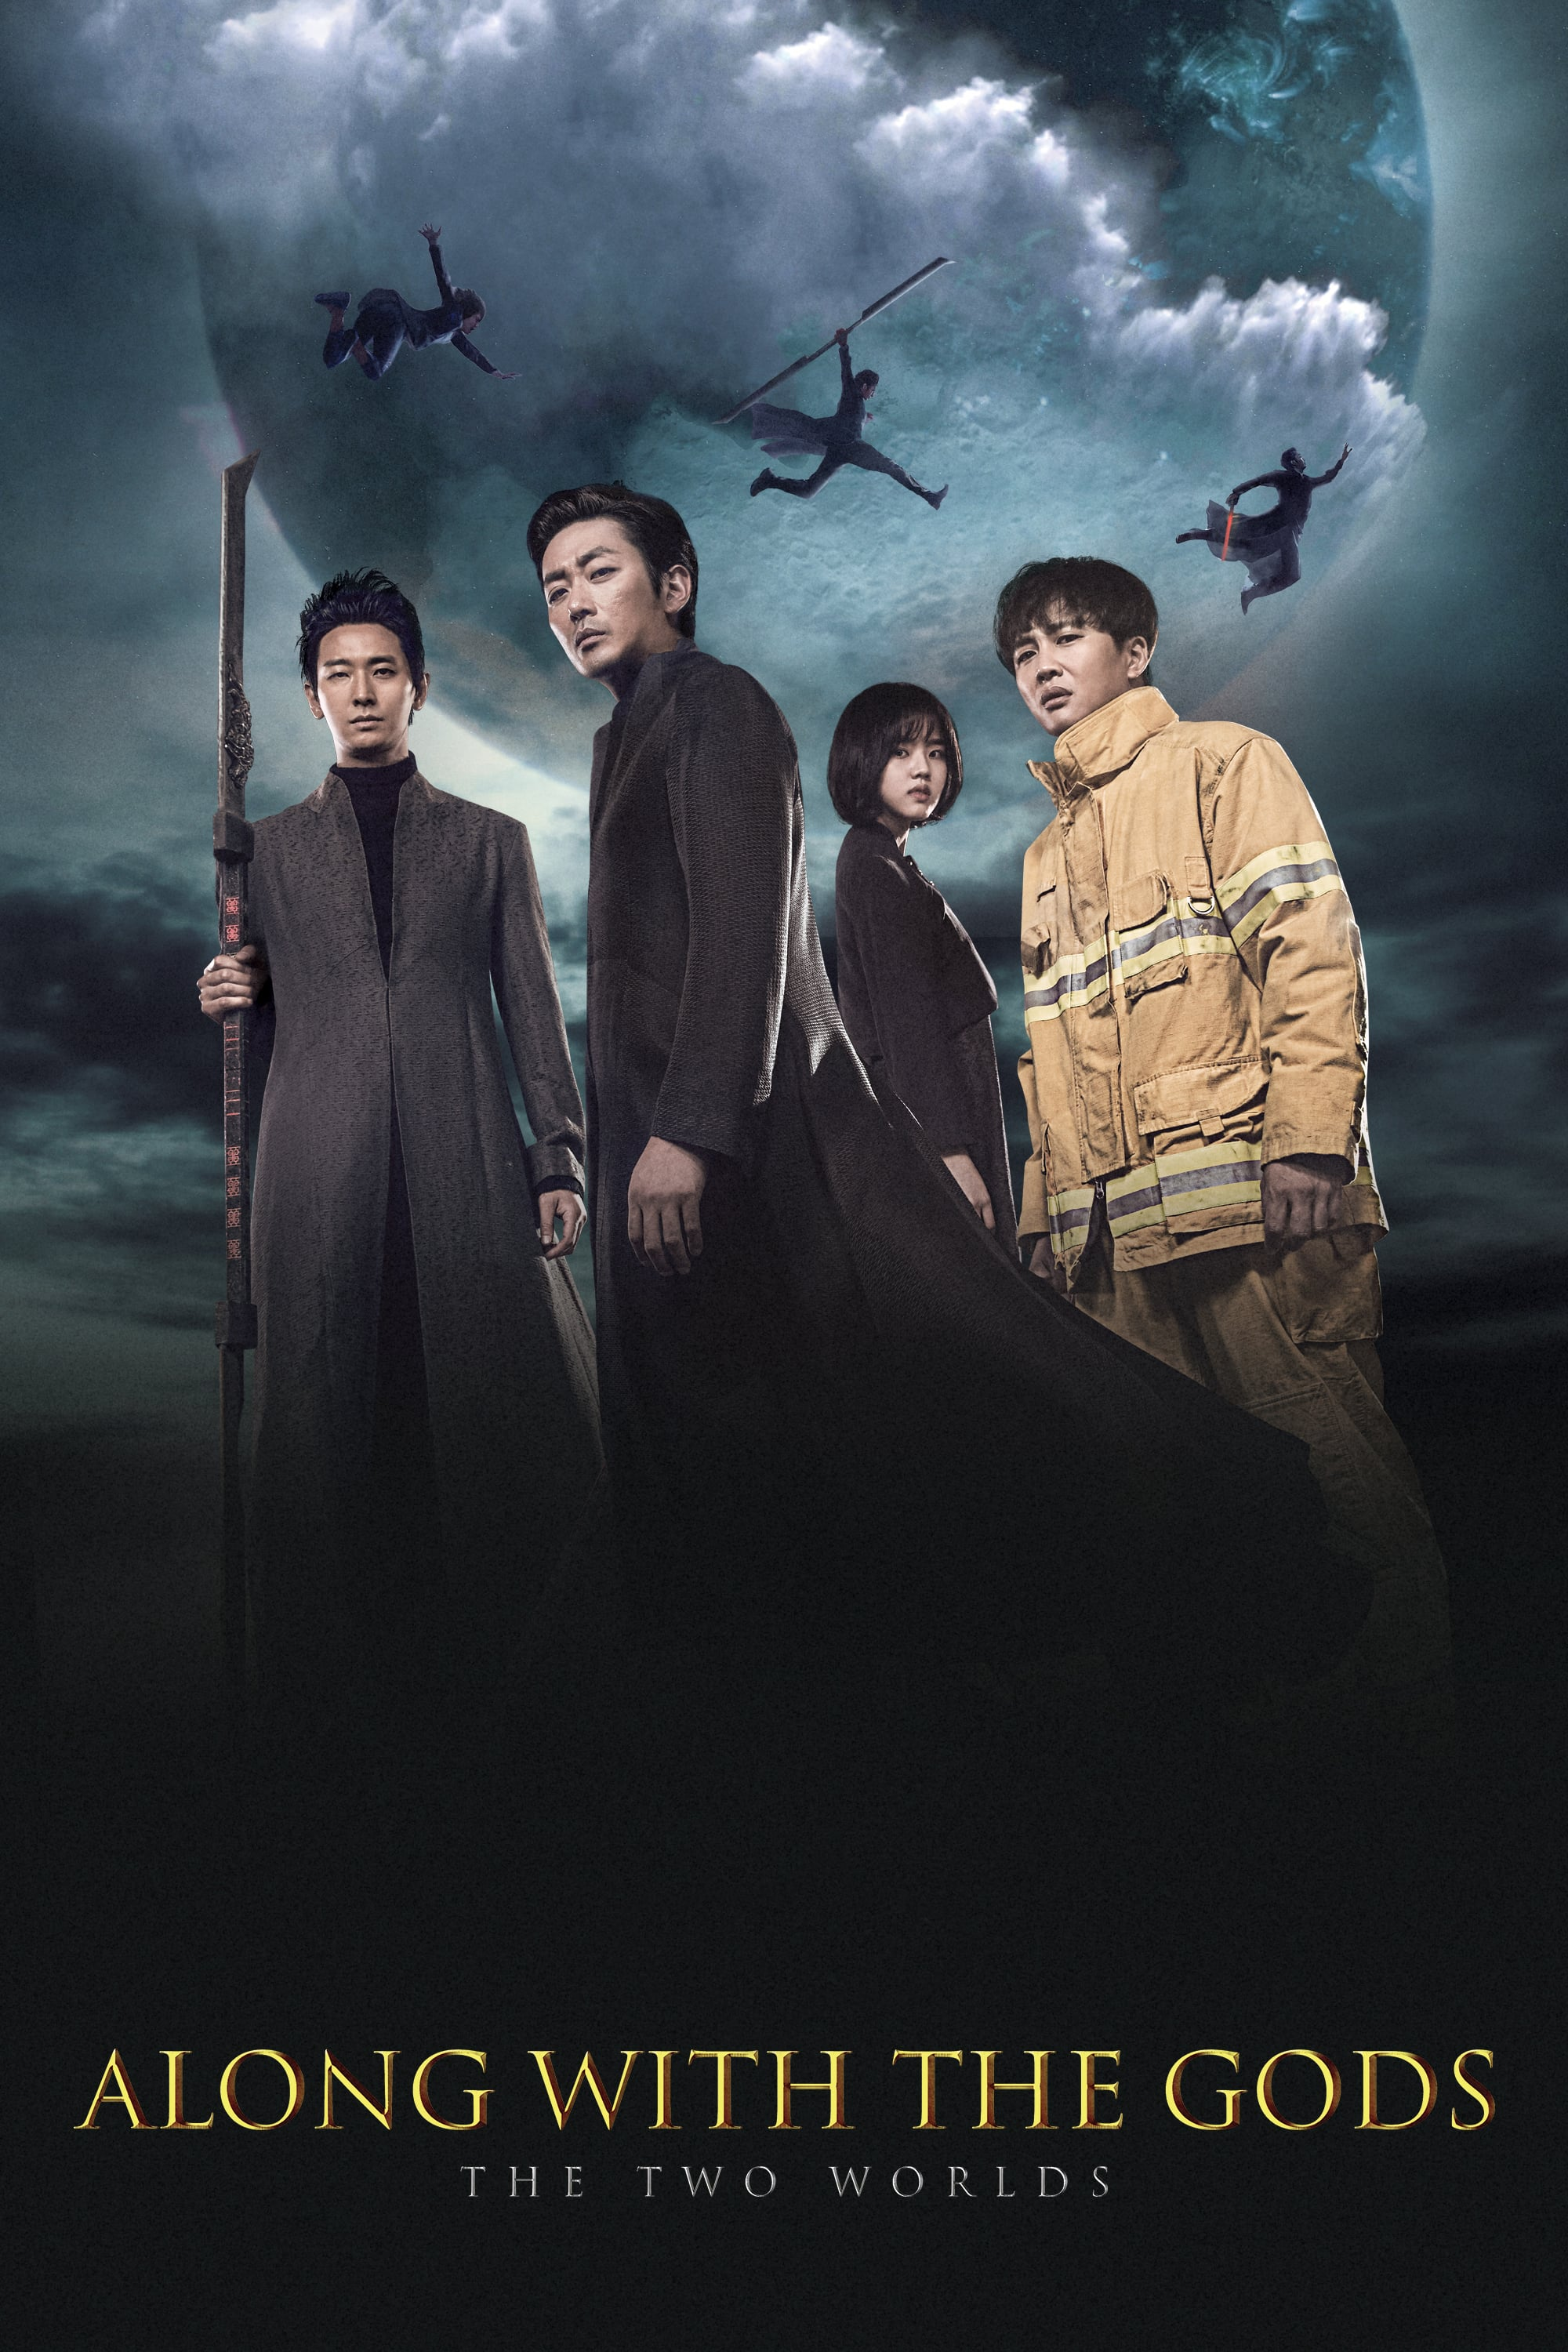 Along With The Gods: The Two Worlds (2017) movie at MovieScore™